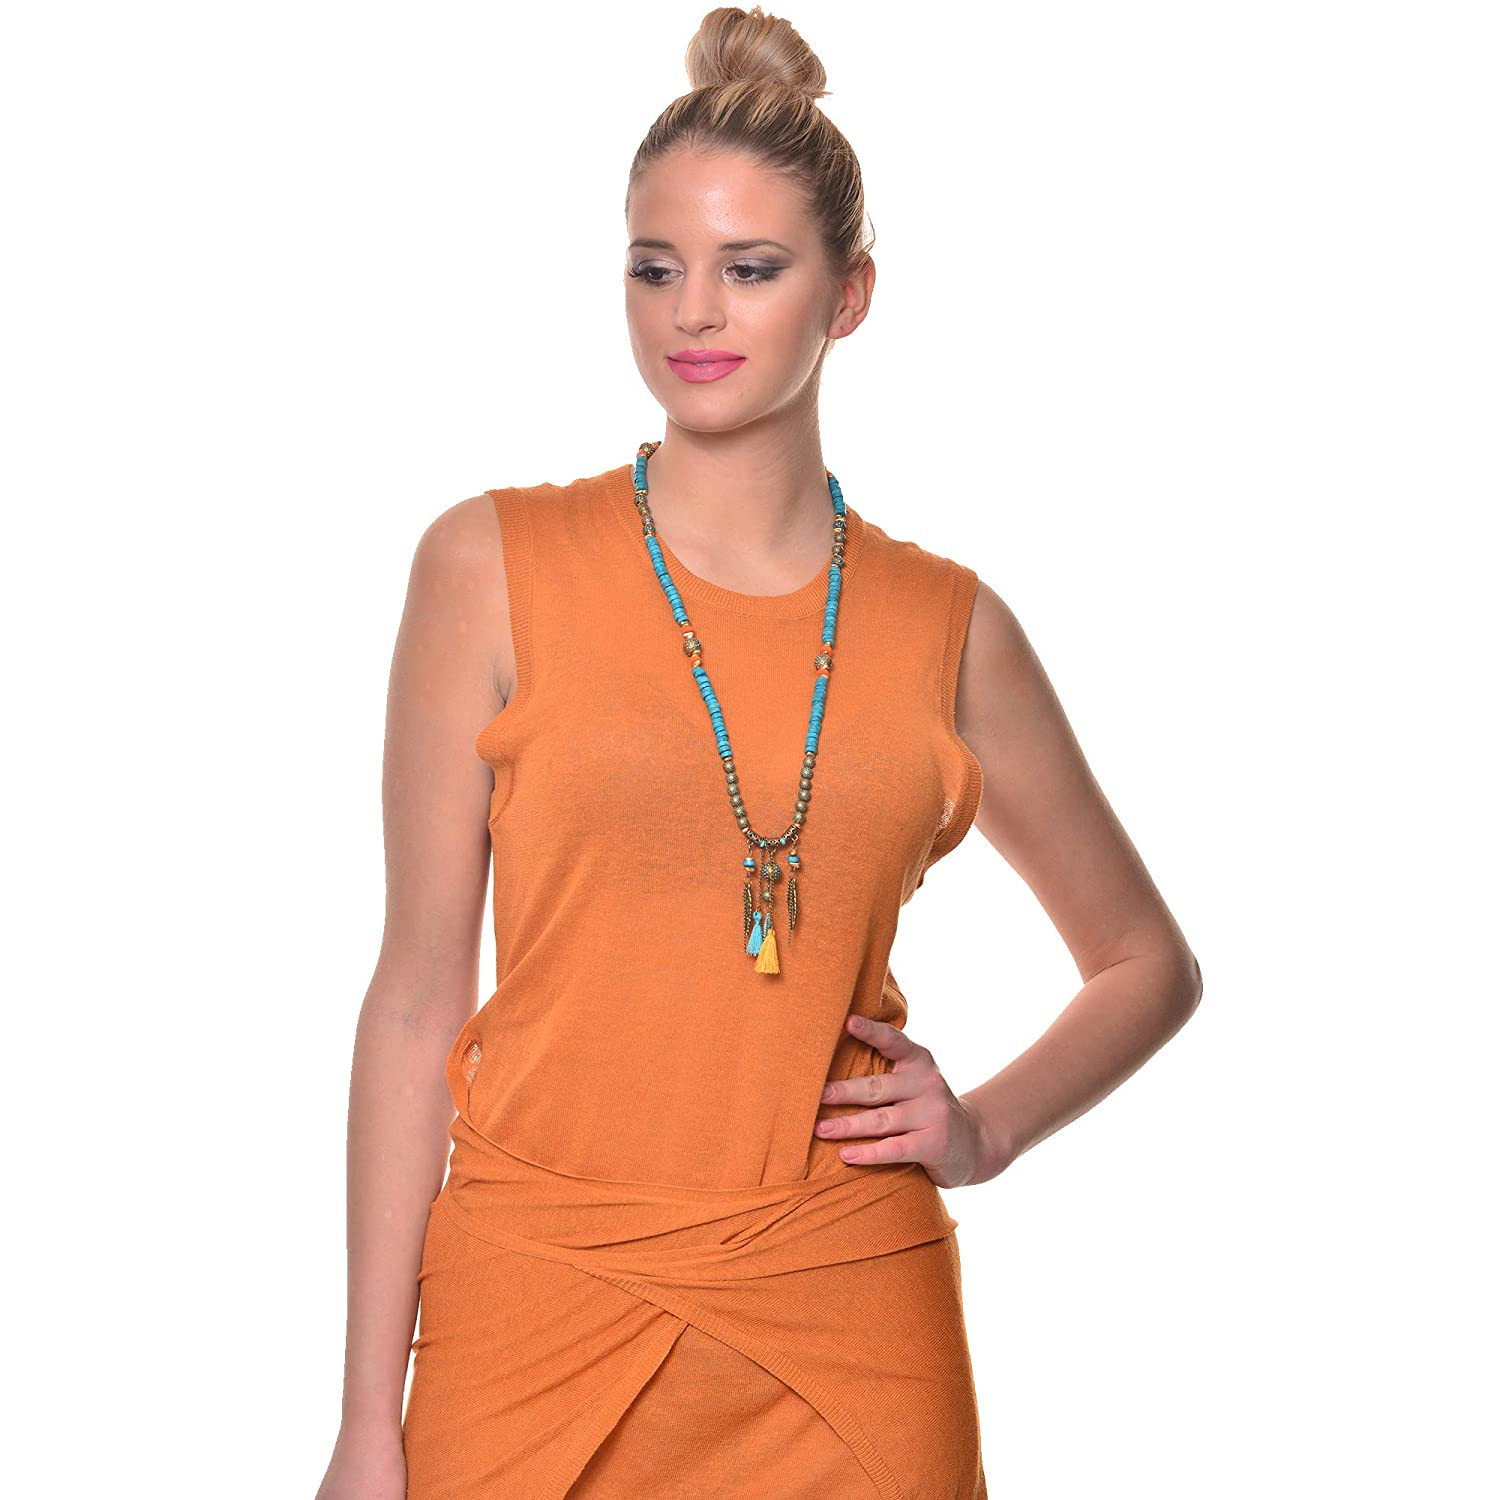 VQ Concept Ethnic Mala İndian Necklace for Women Girls Handmade Gift